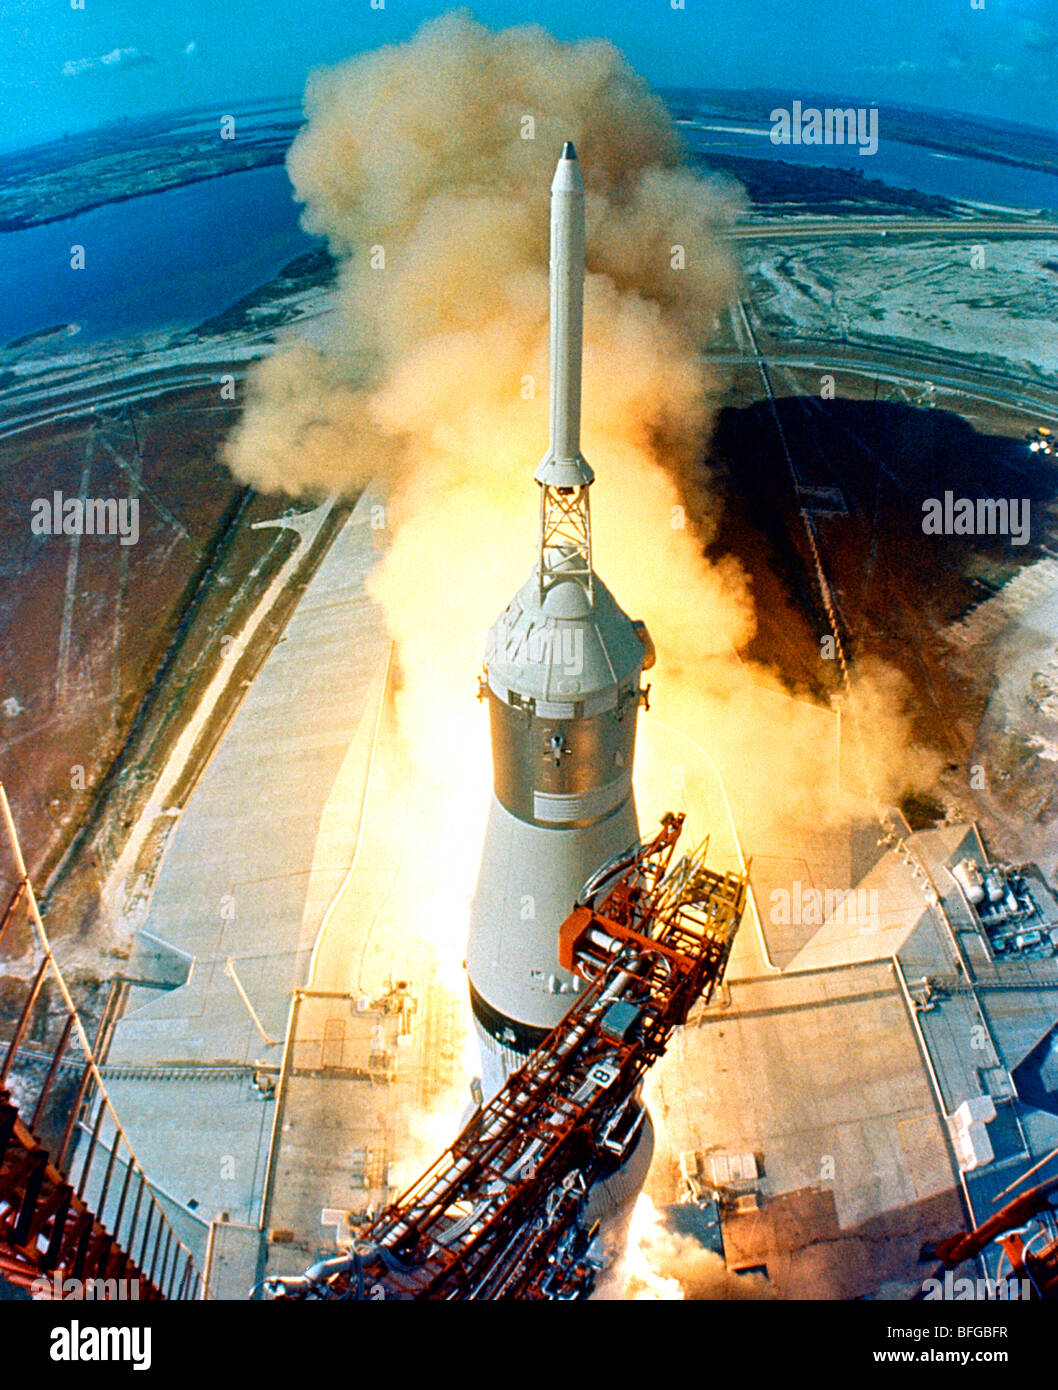 Apollo 11 Lancio, Saturn V rocket Foto Stock